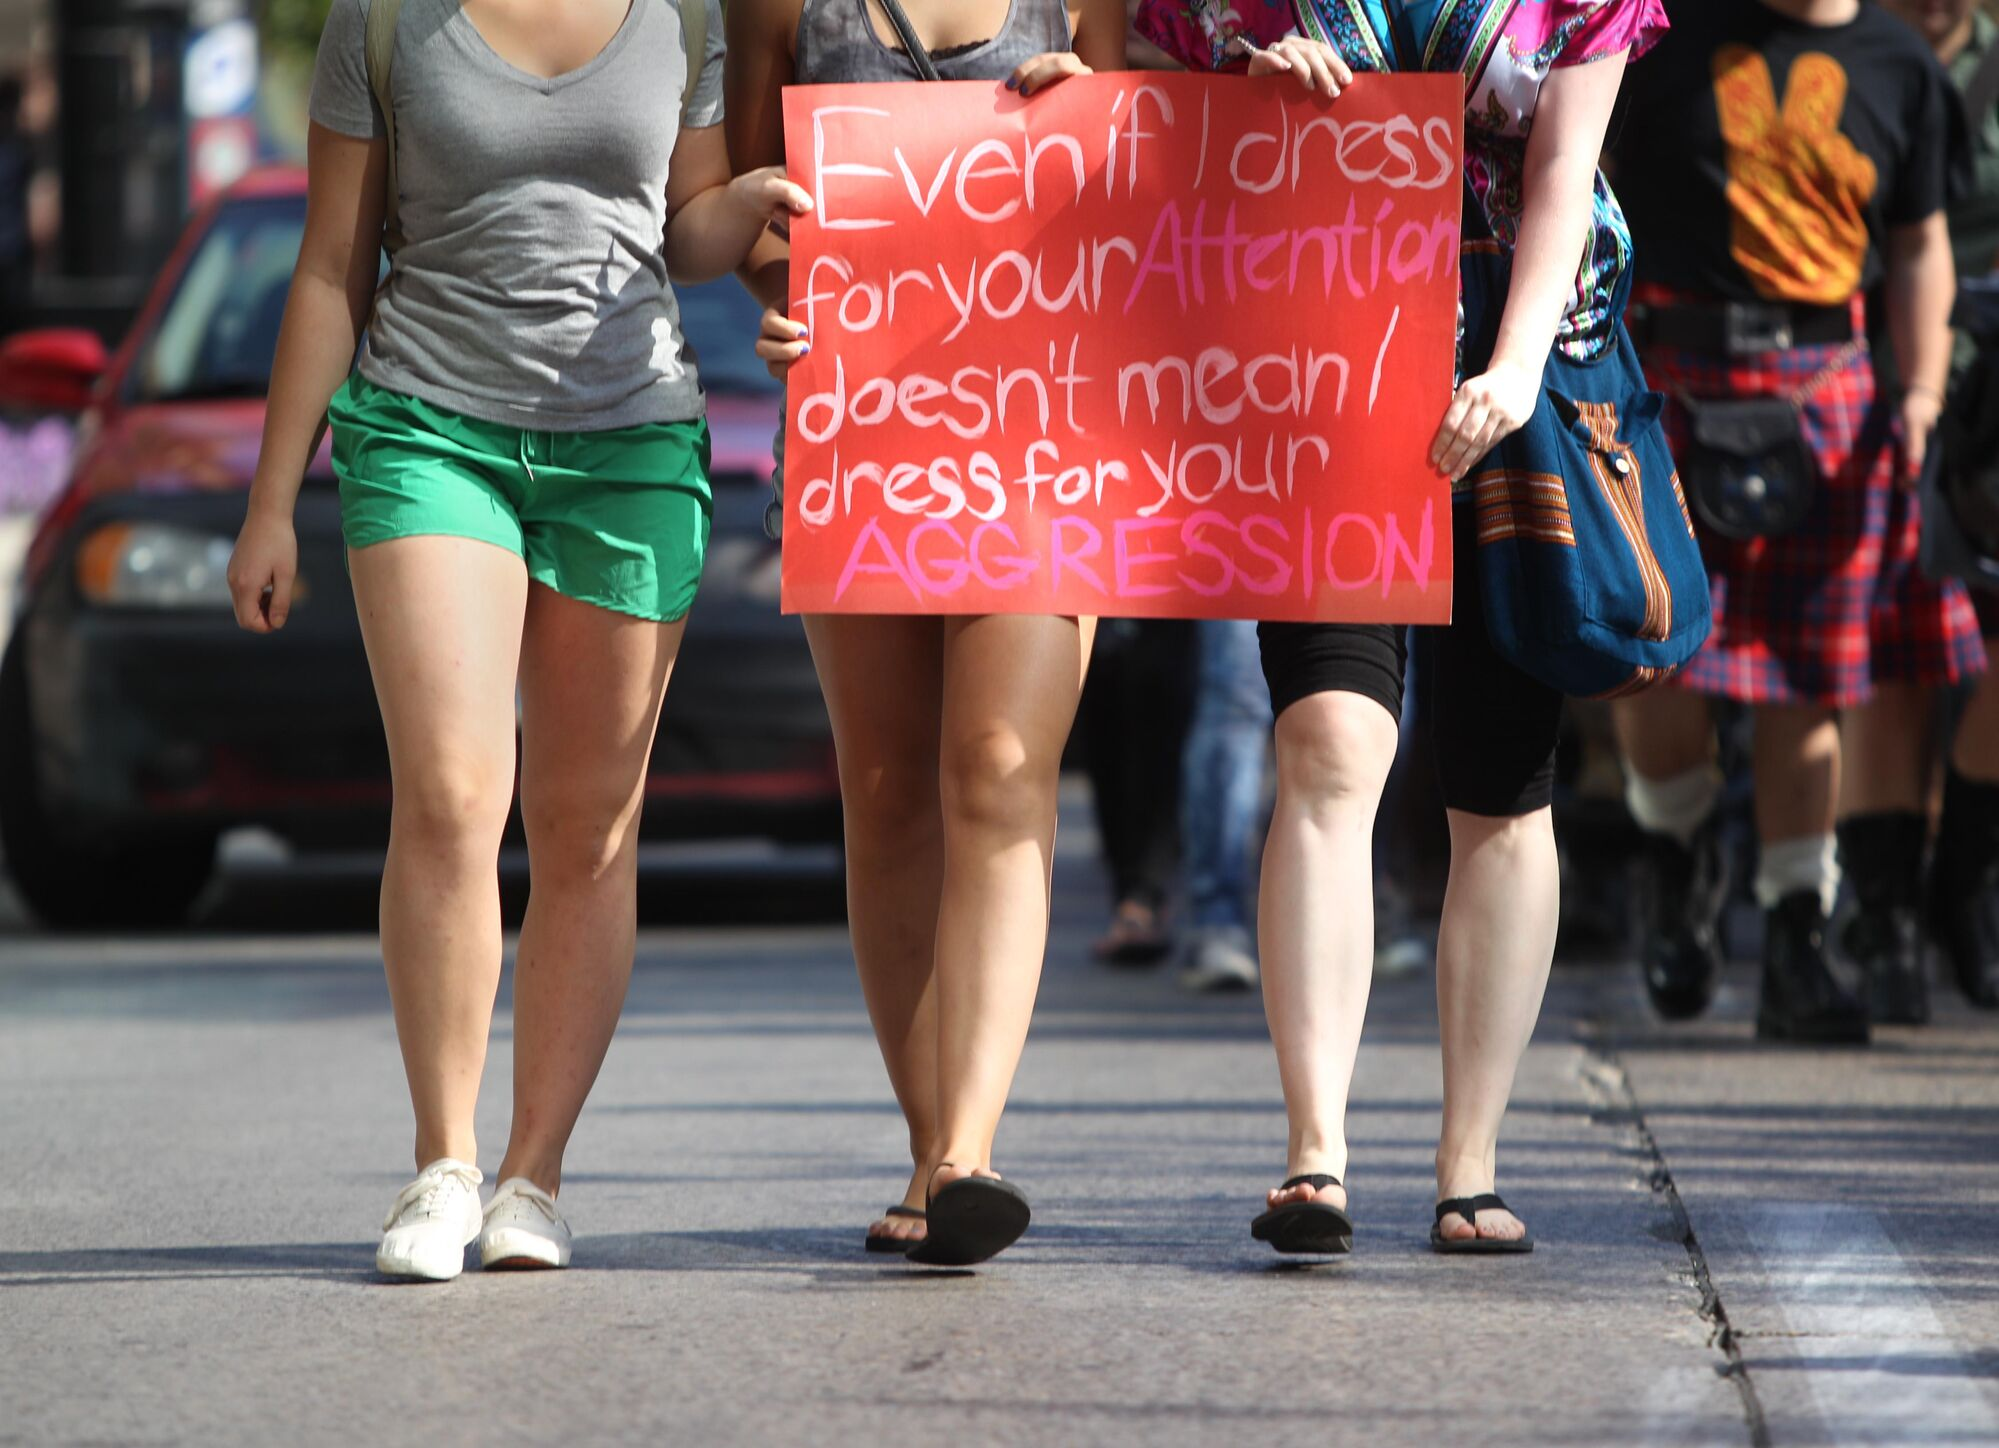 Annual Slut Walk events in many cities across Canada have drawn attention to the pervasiveness of victim-blaming in sexual-assault cases.